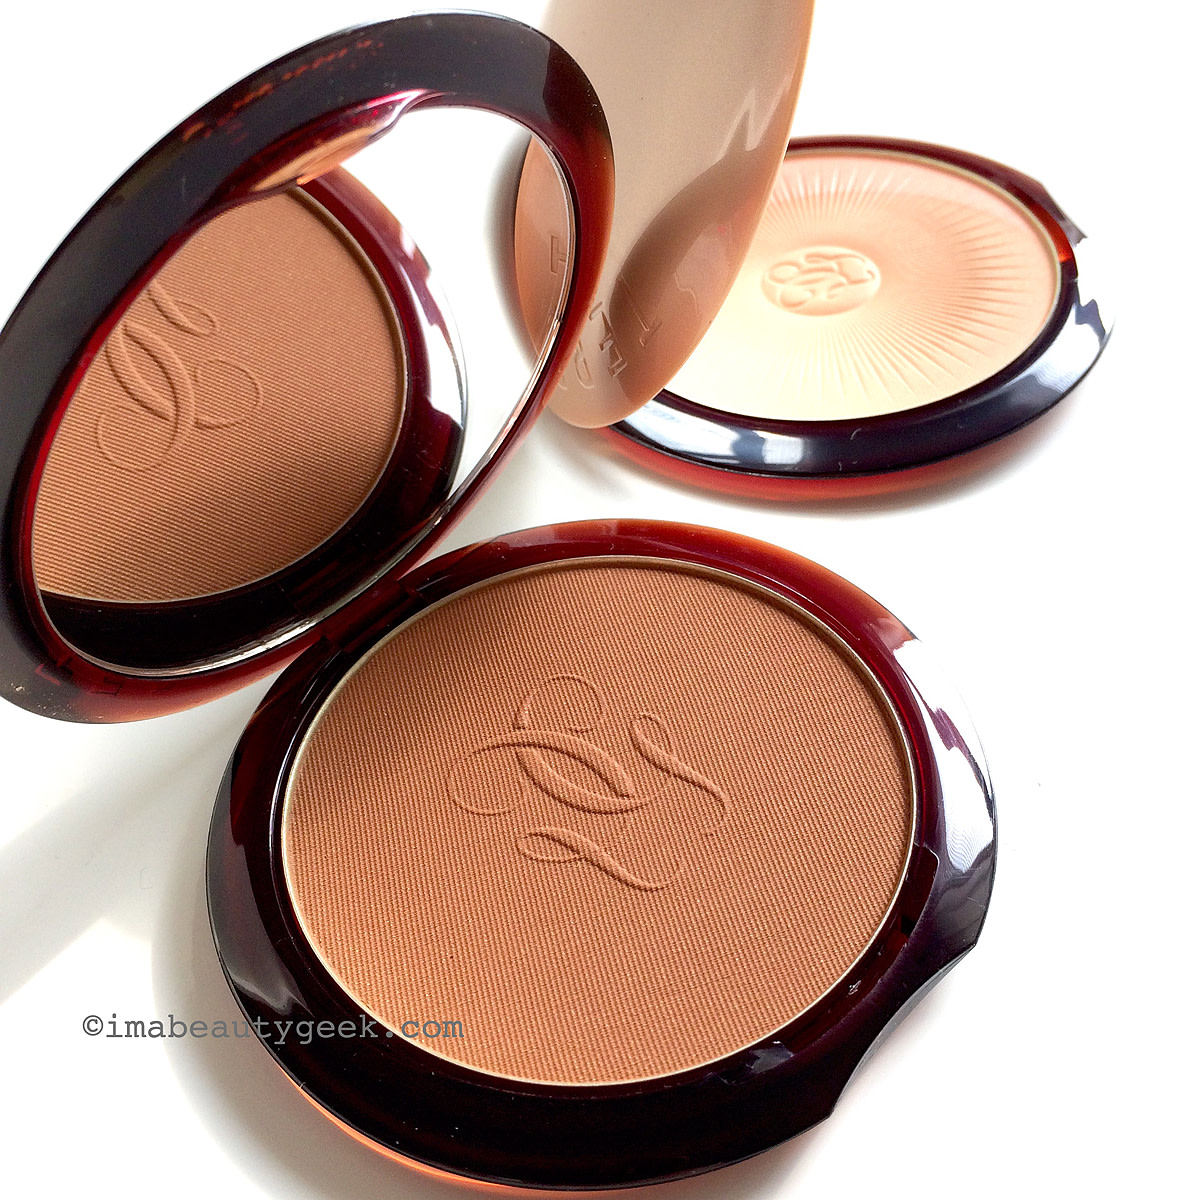 Guerlain Terracotta choose your best bronzer